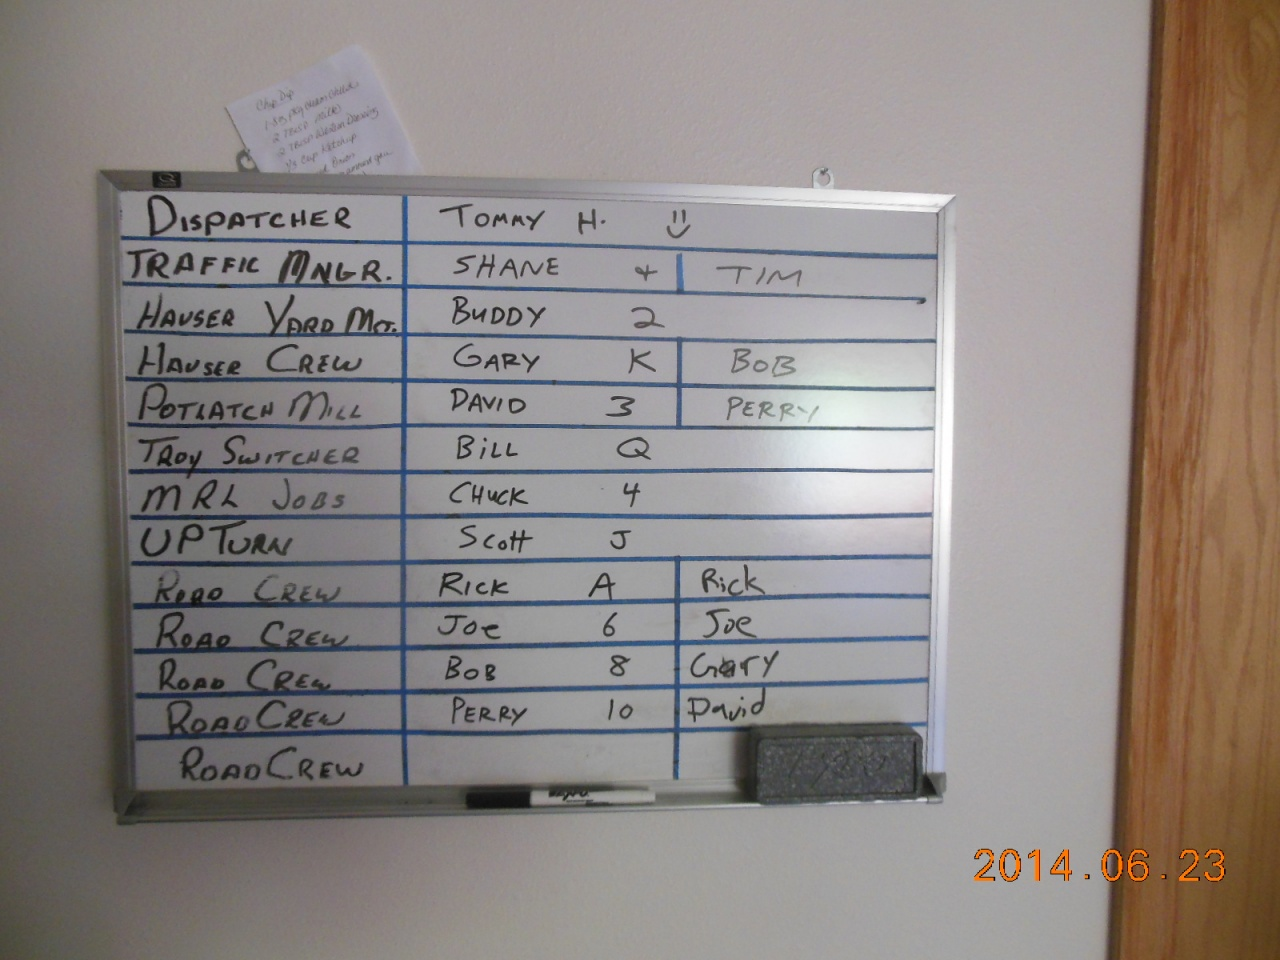 Sunday's call board. THANKS guys for coming to RiverRail 2014!